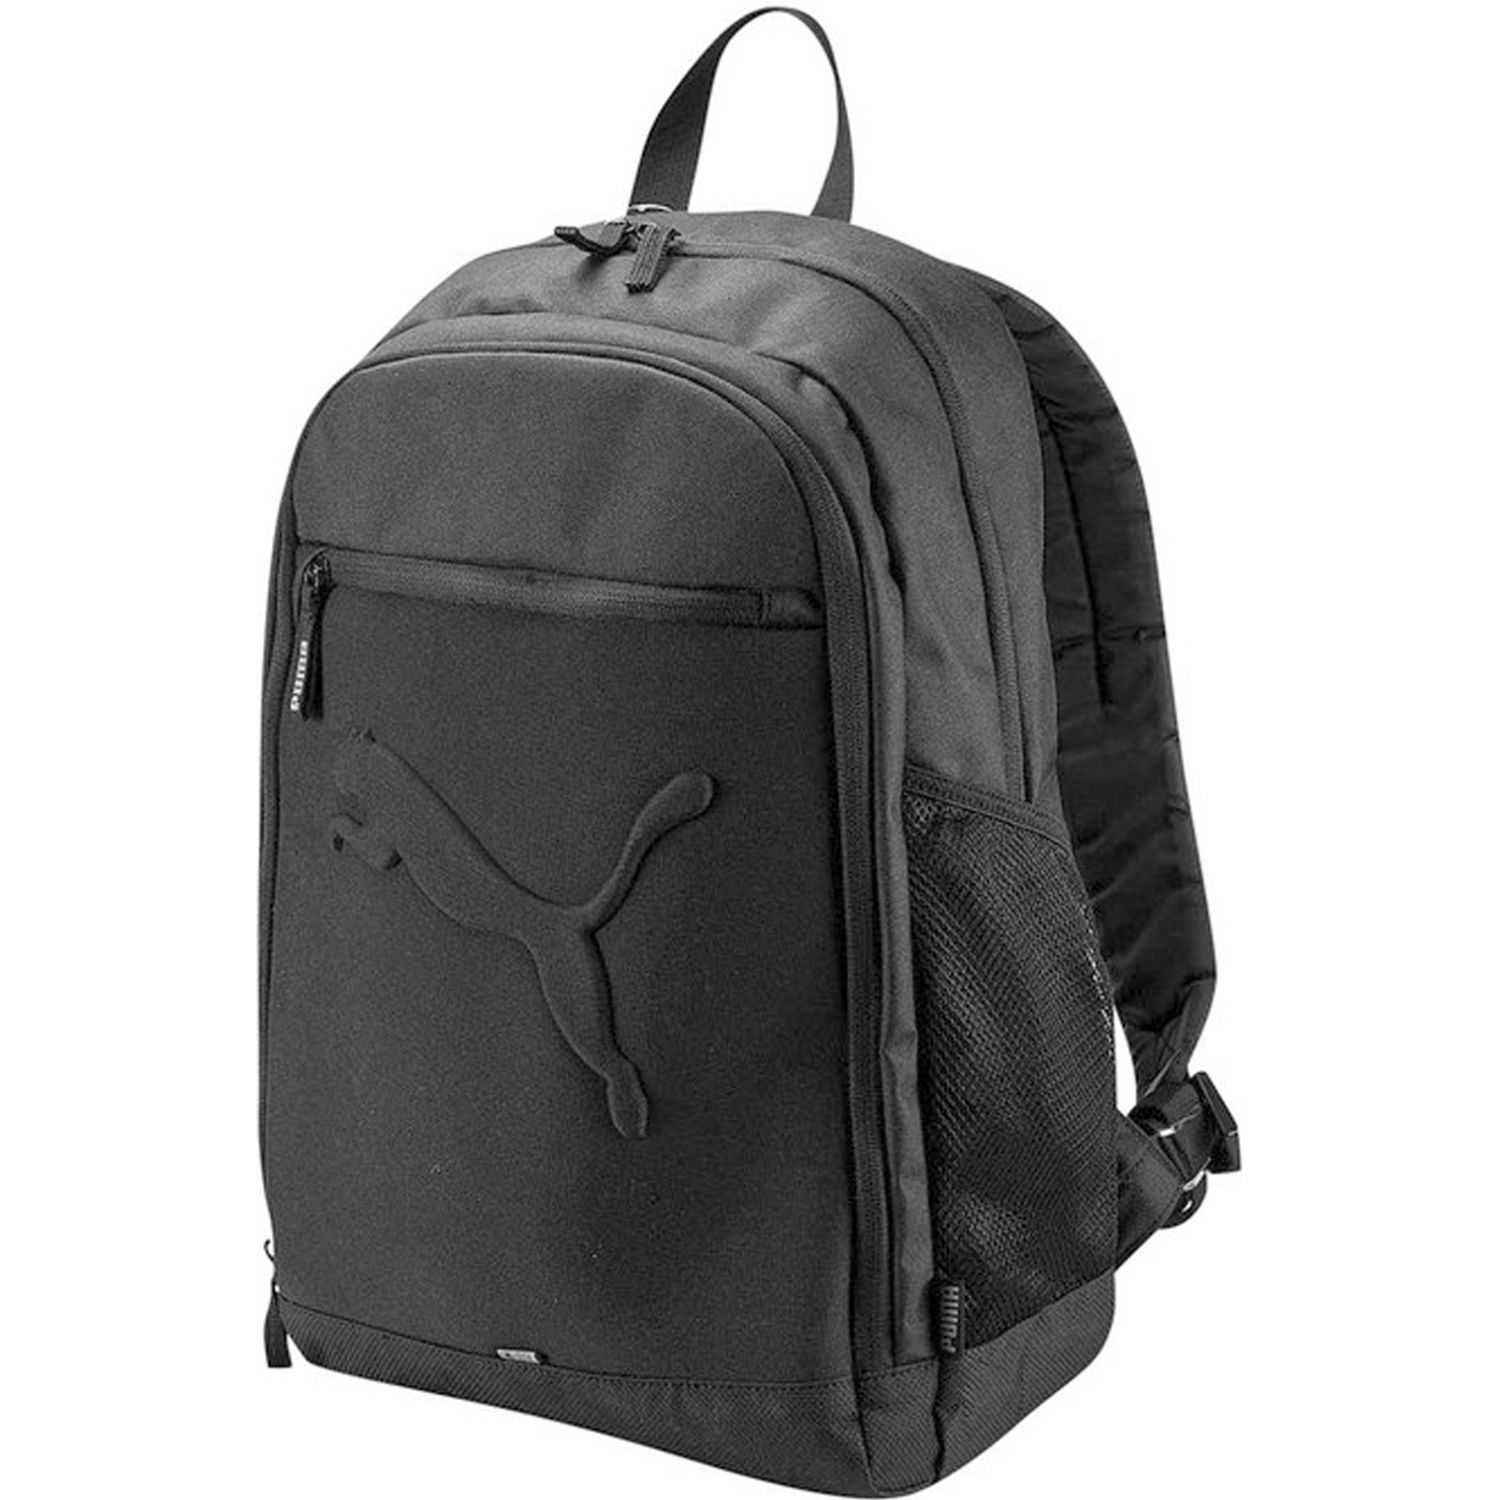 Puma puma buzz backpack Negro Mochilas Multipropósitos